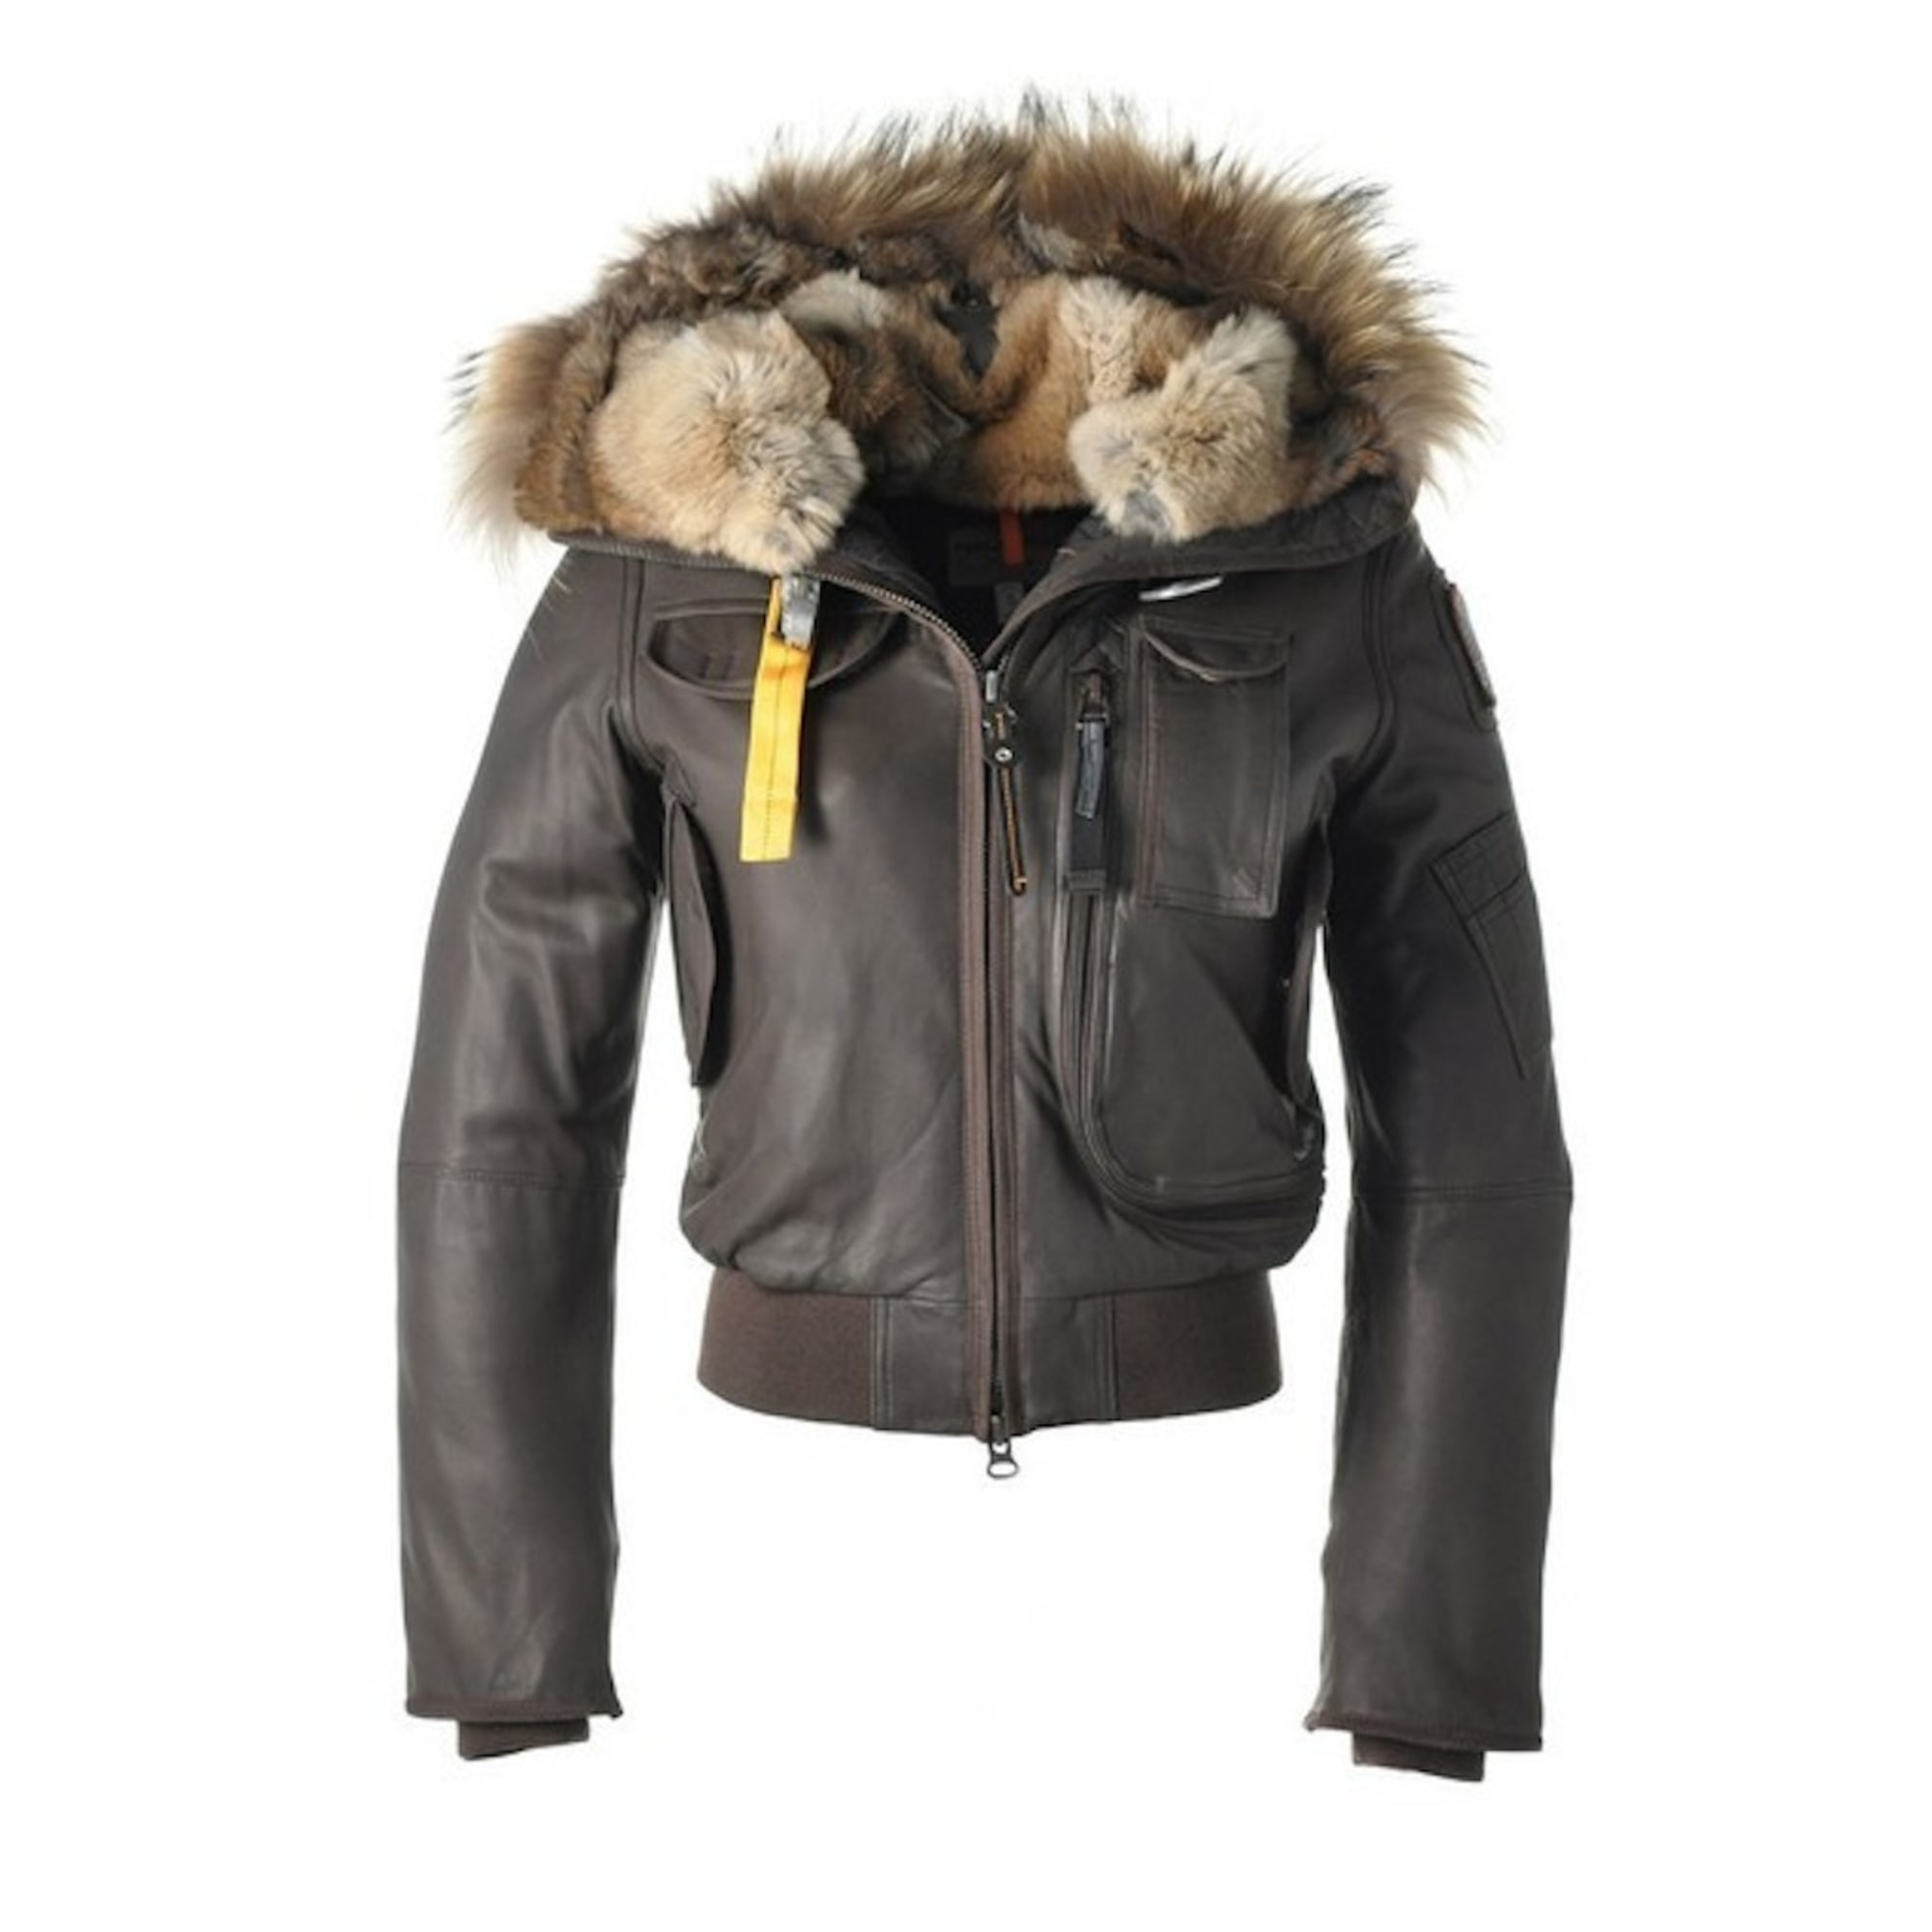 Doudoune PARAJUMPERS Marron. PROMOFLASH